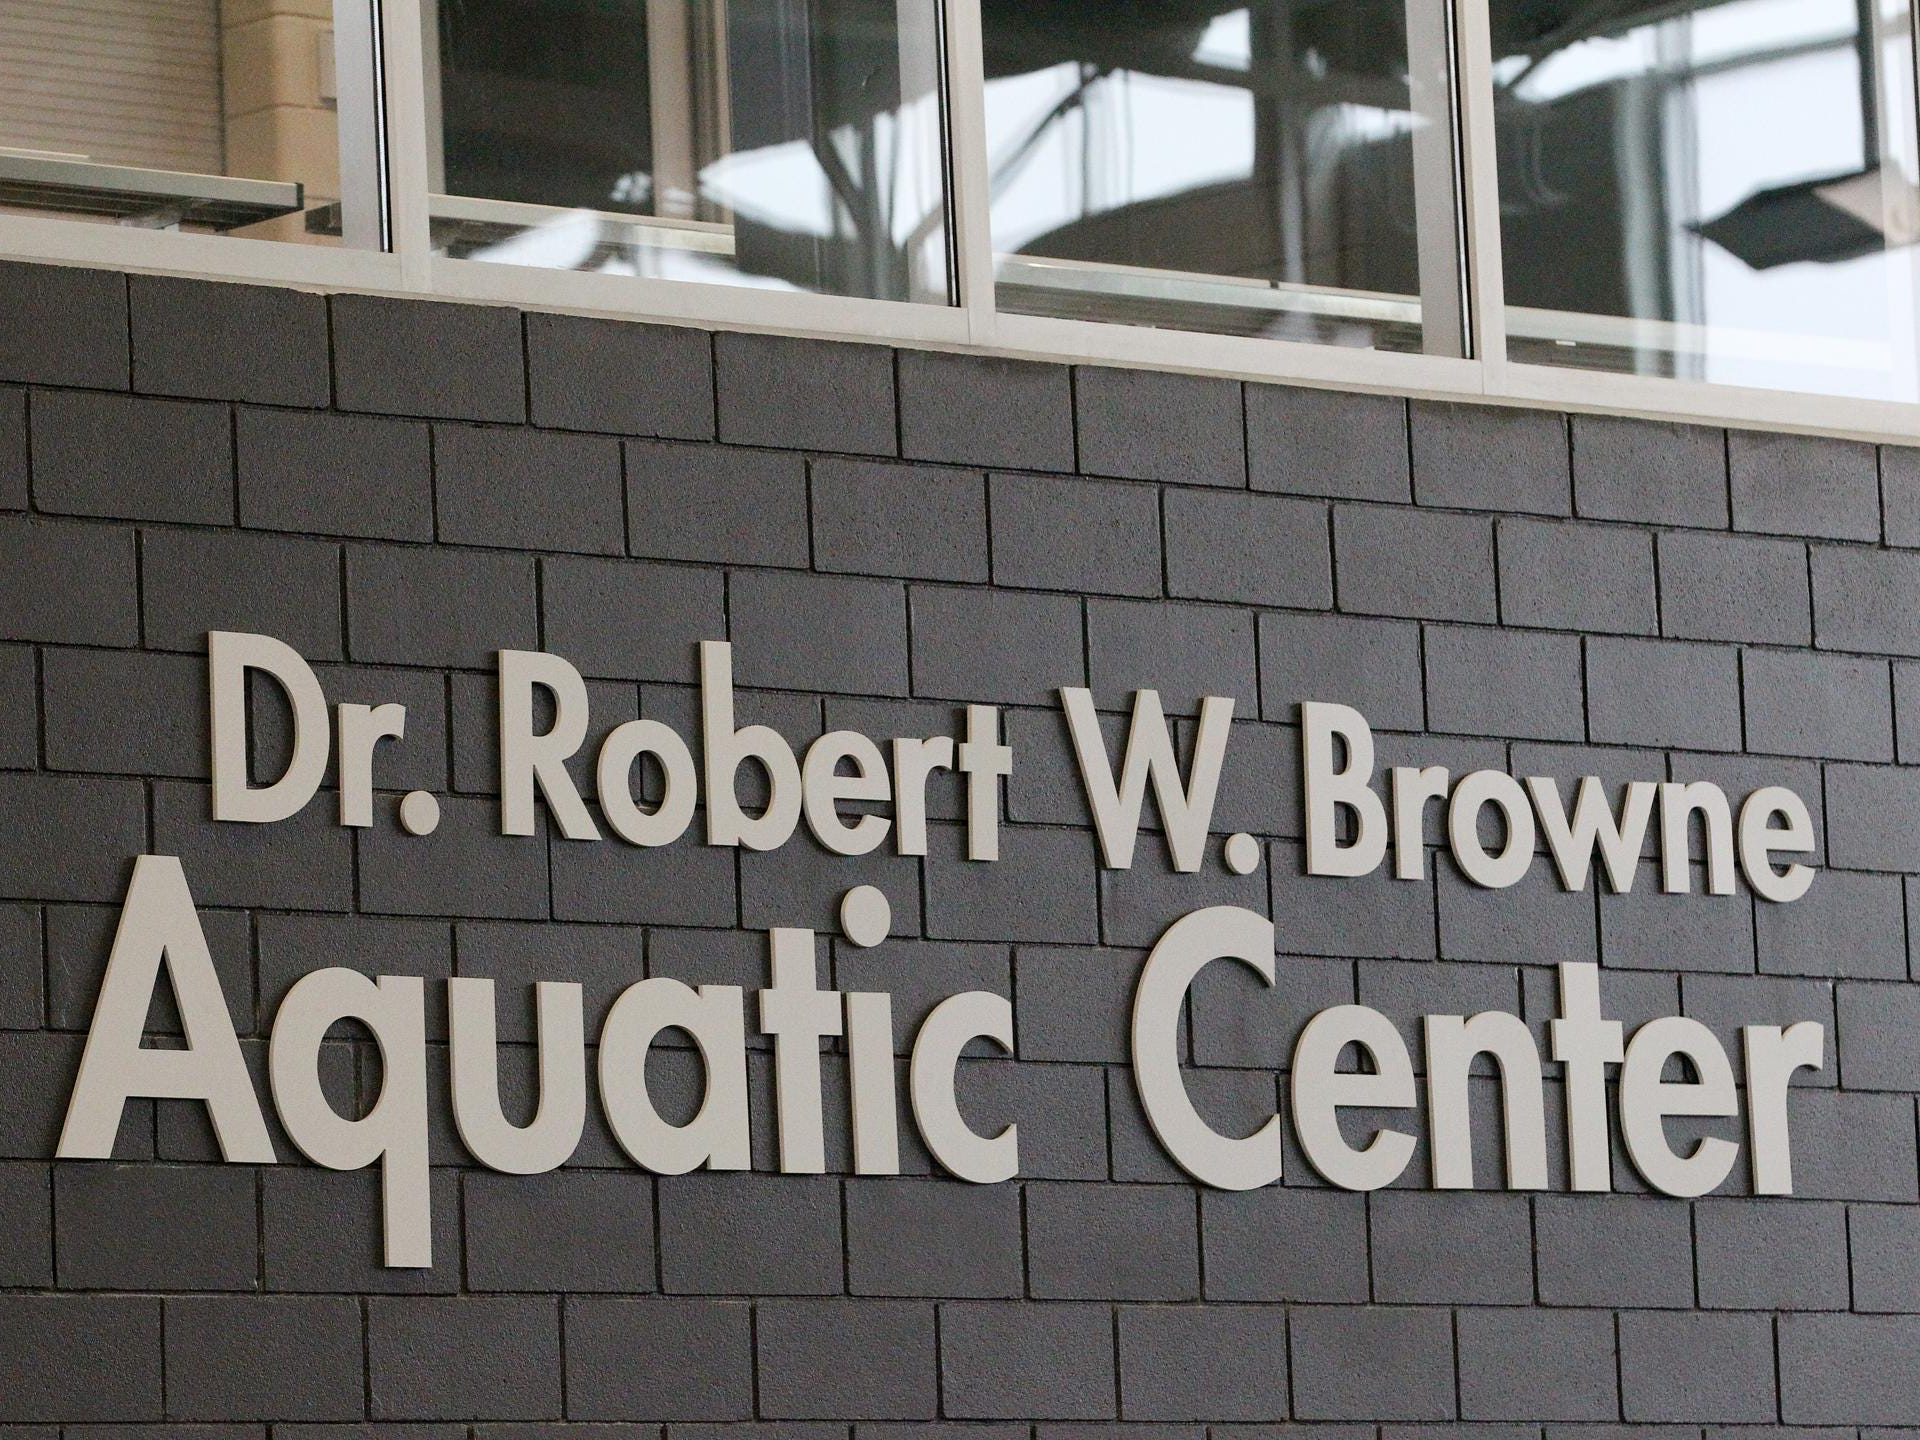 Coldwater High School will host its first home swim meet at the Dr. Robert W. Browne Aquatic Center on Thursday.